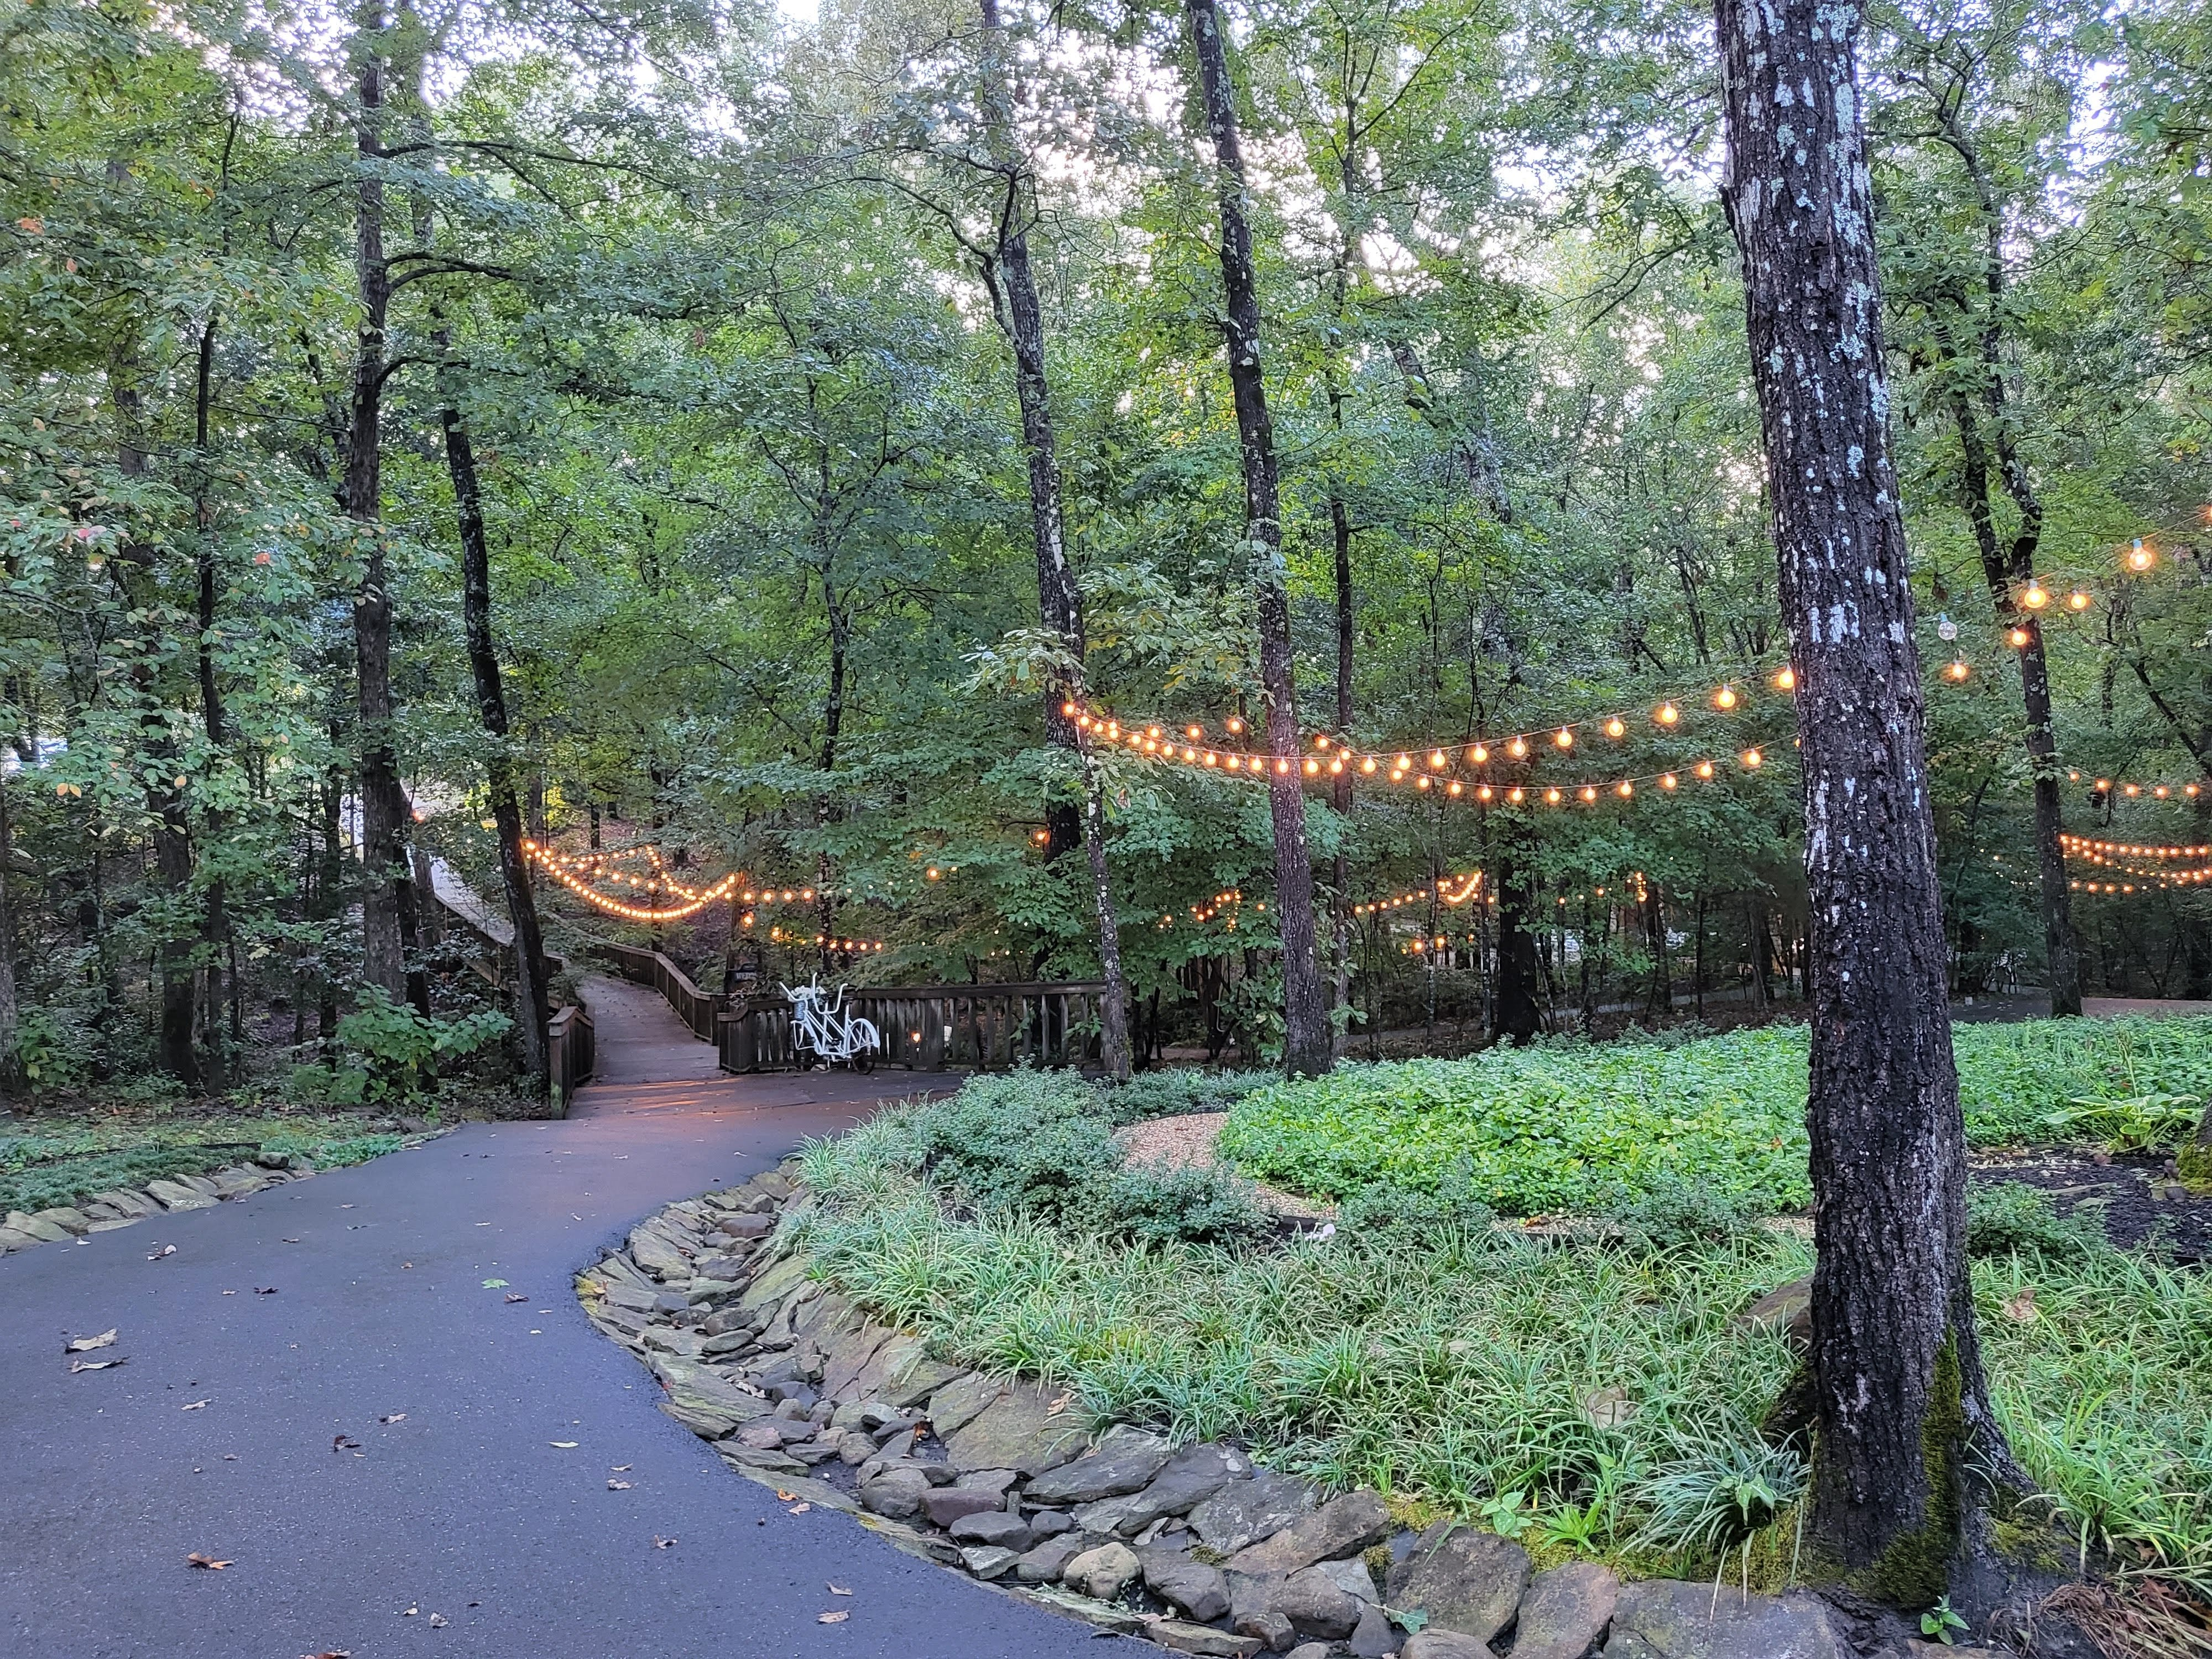 A walkway in the woods, string lights all around